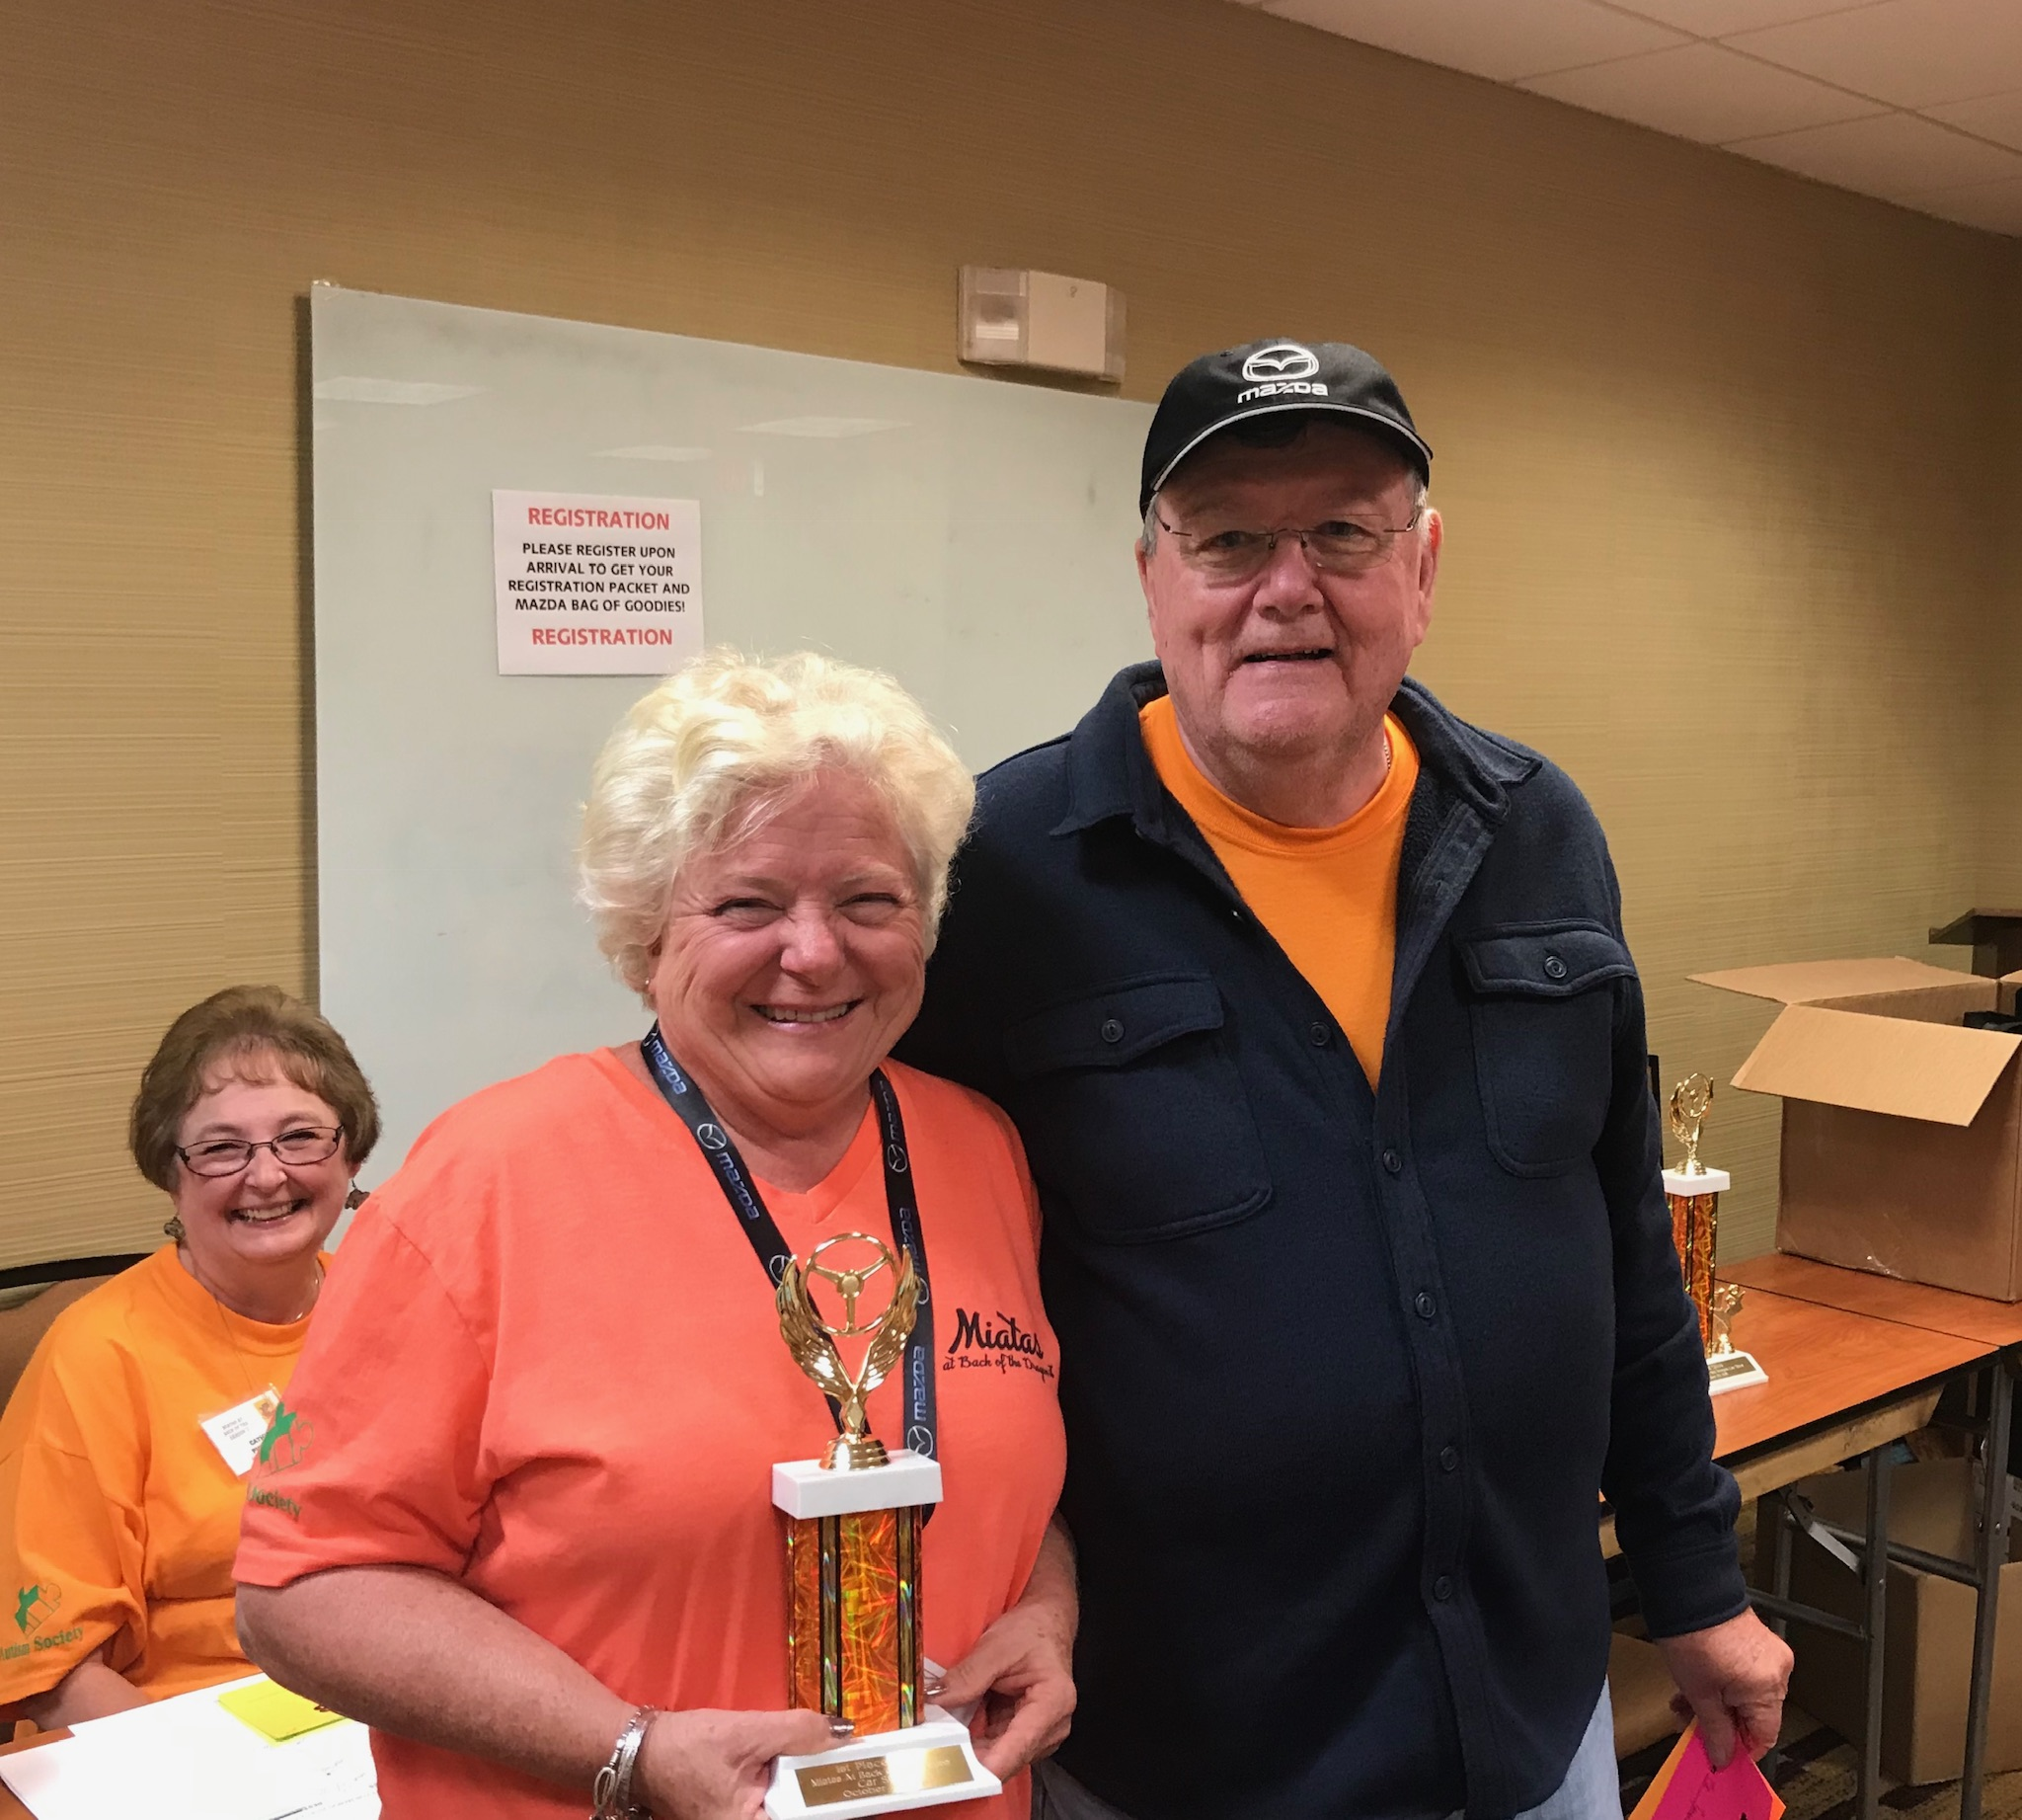 Jim Pickett presented the 1st Place - NB division trophy to Tena Hough.